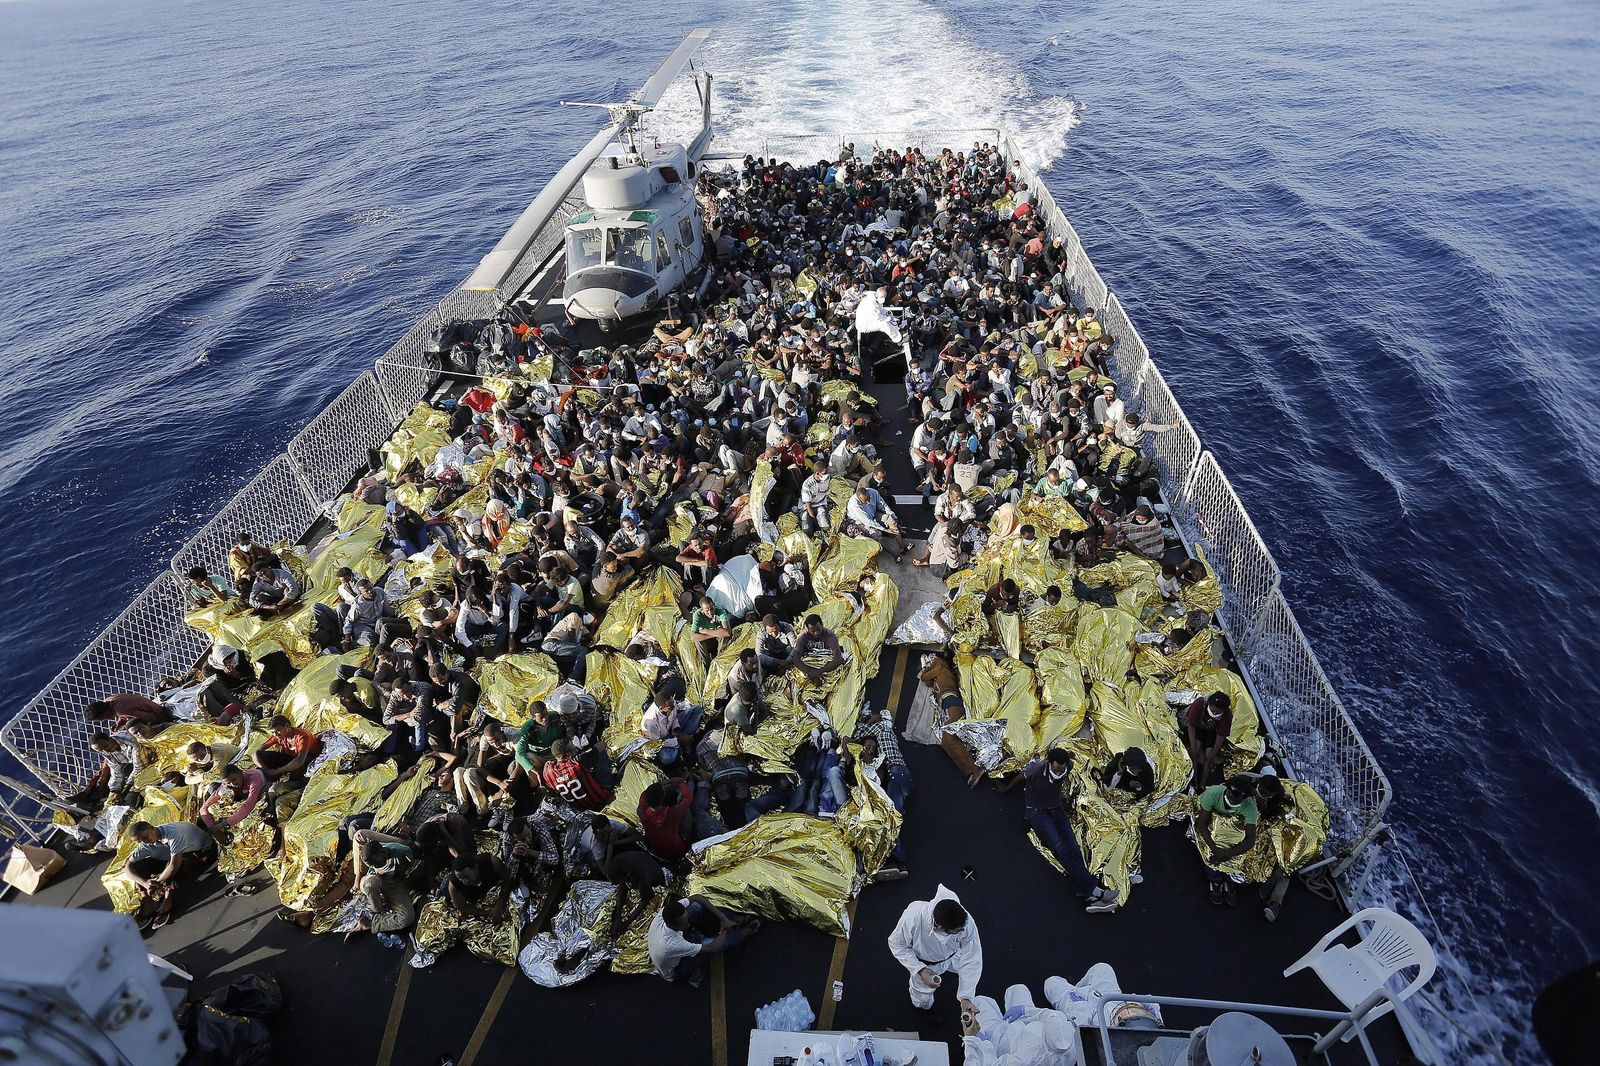 Migrants: 956 rescued by Italian Navy boat Fregata Euro